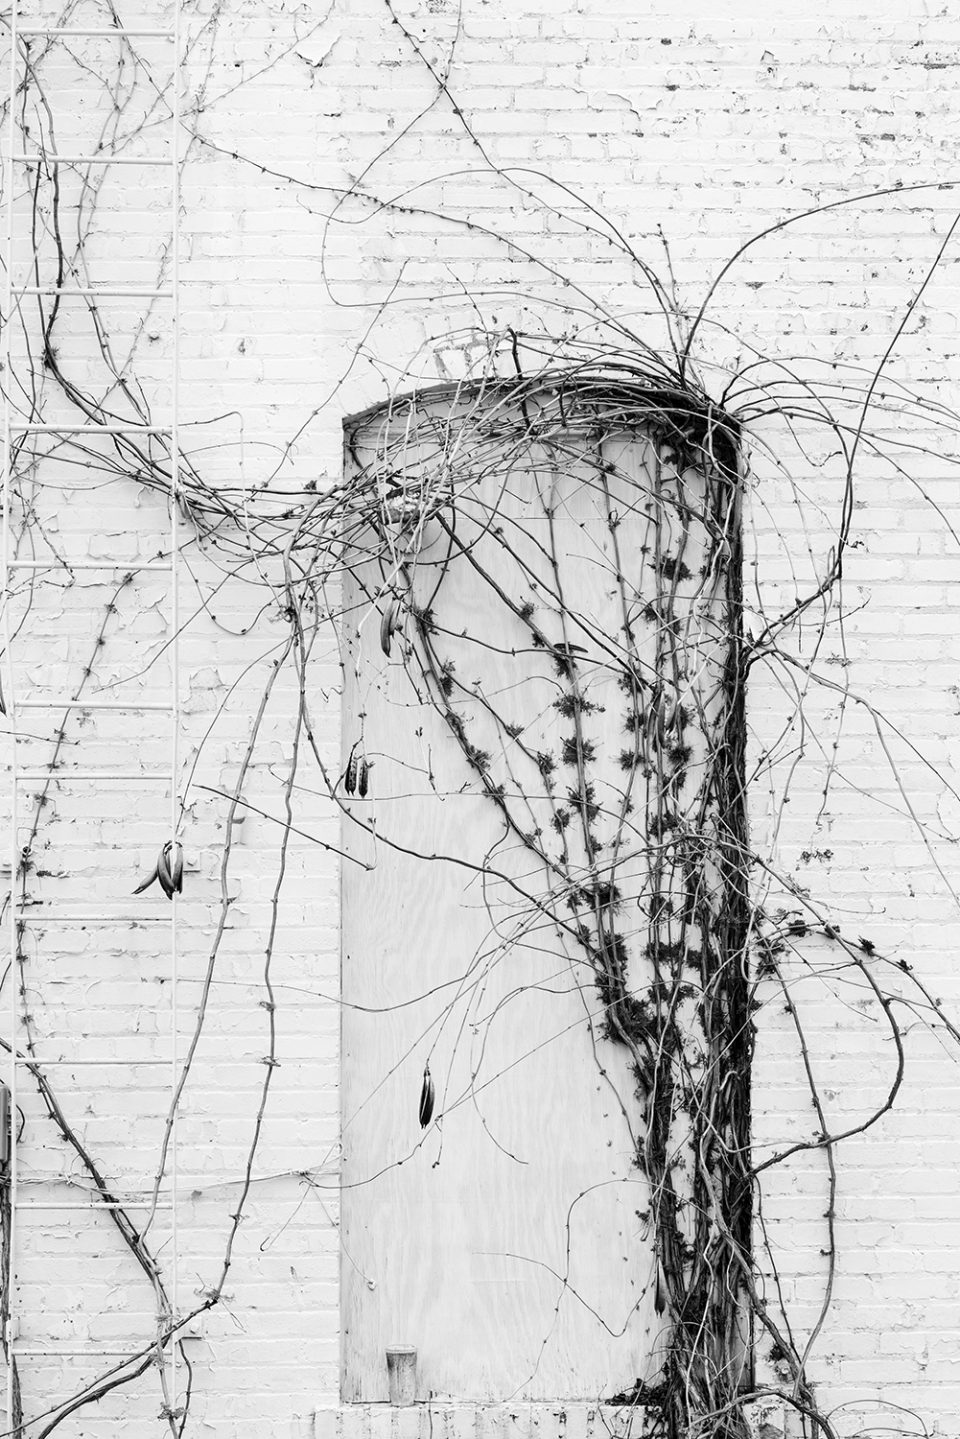 Climbing vines found in an Anniston, Alabama alley. Black and white photograph by Keith Dotson.